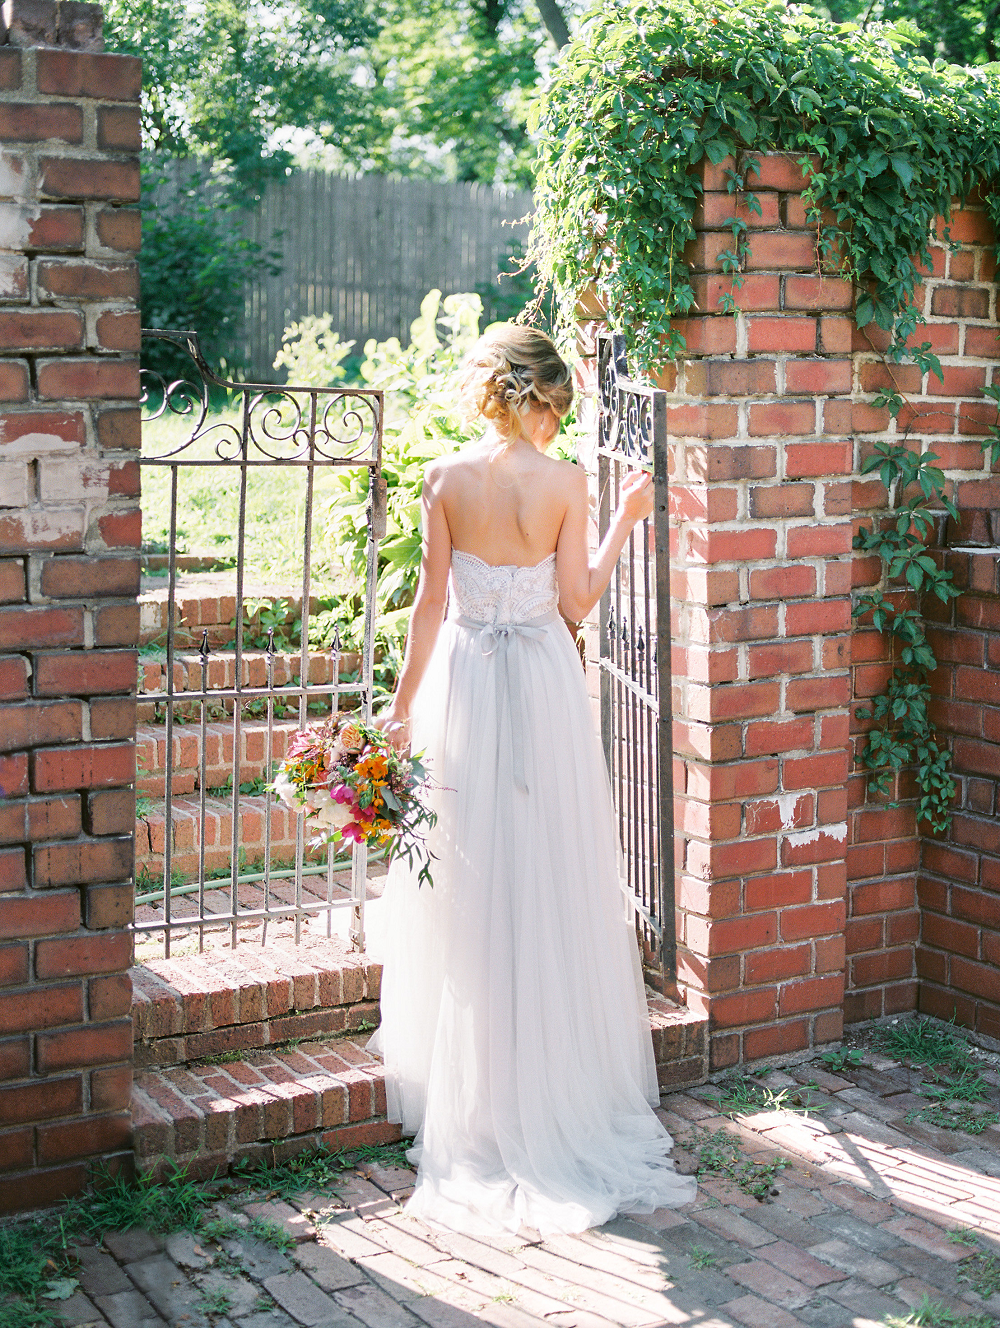 Whimsical Summer Wedding Styled Shoot at Henderson Castle Featured in WeddingDay Magazine Wedding Dress and Bouquet